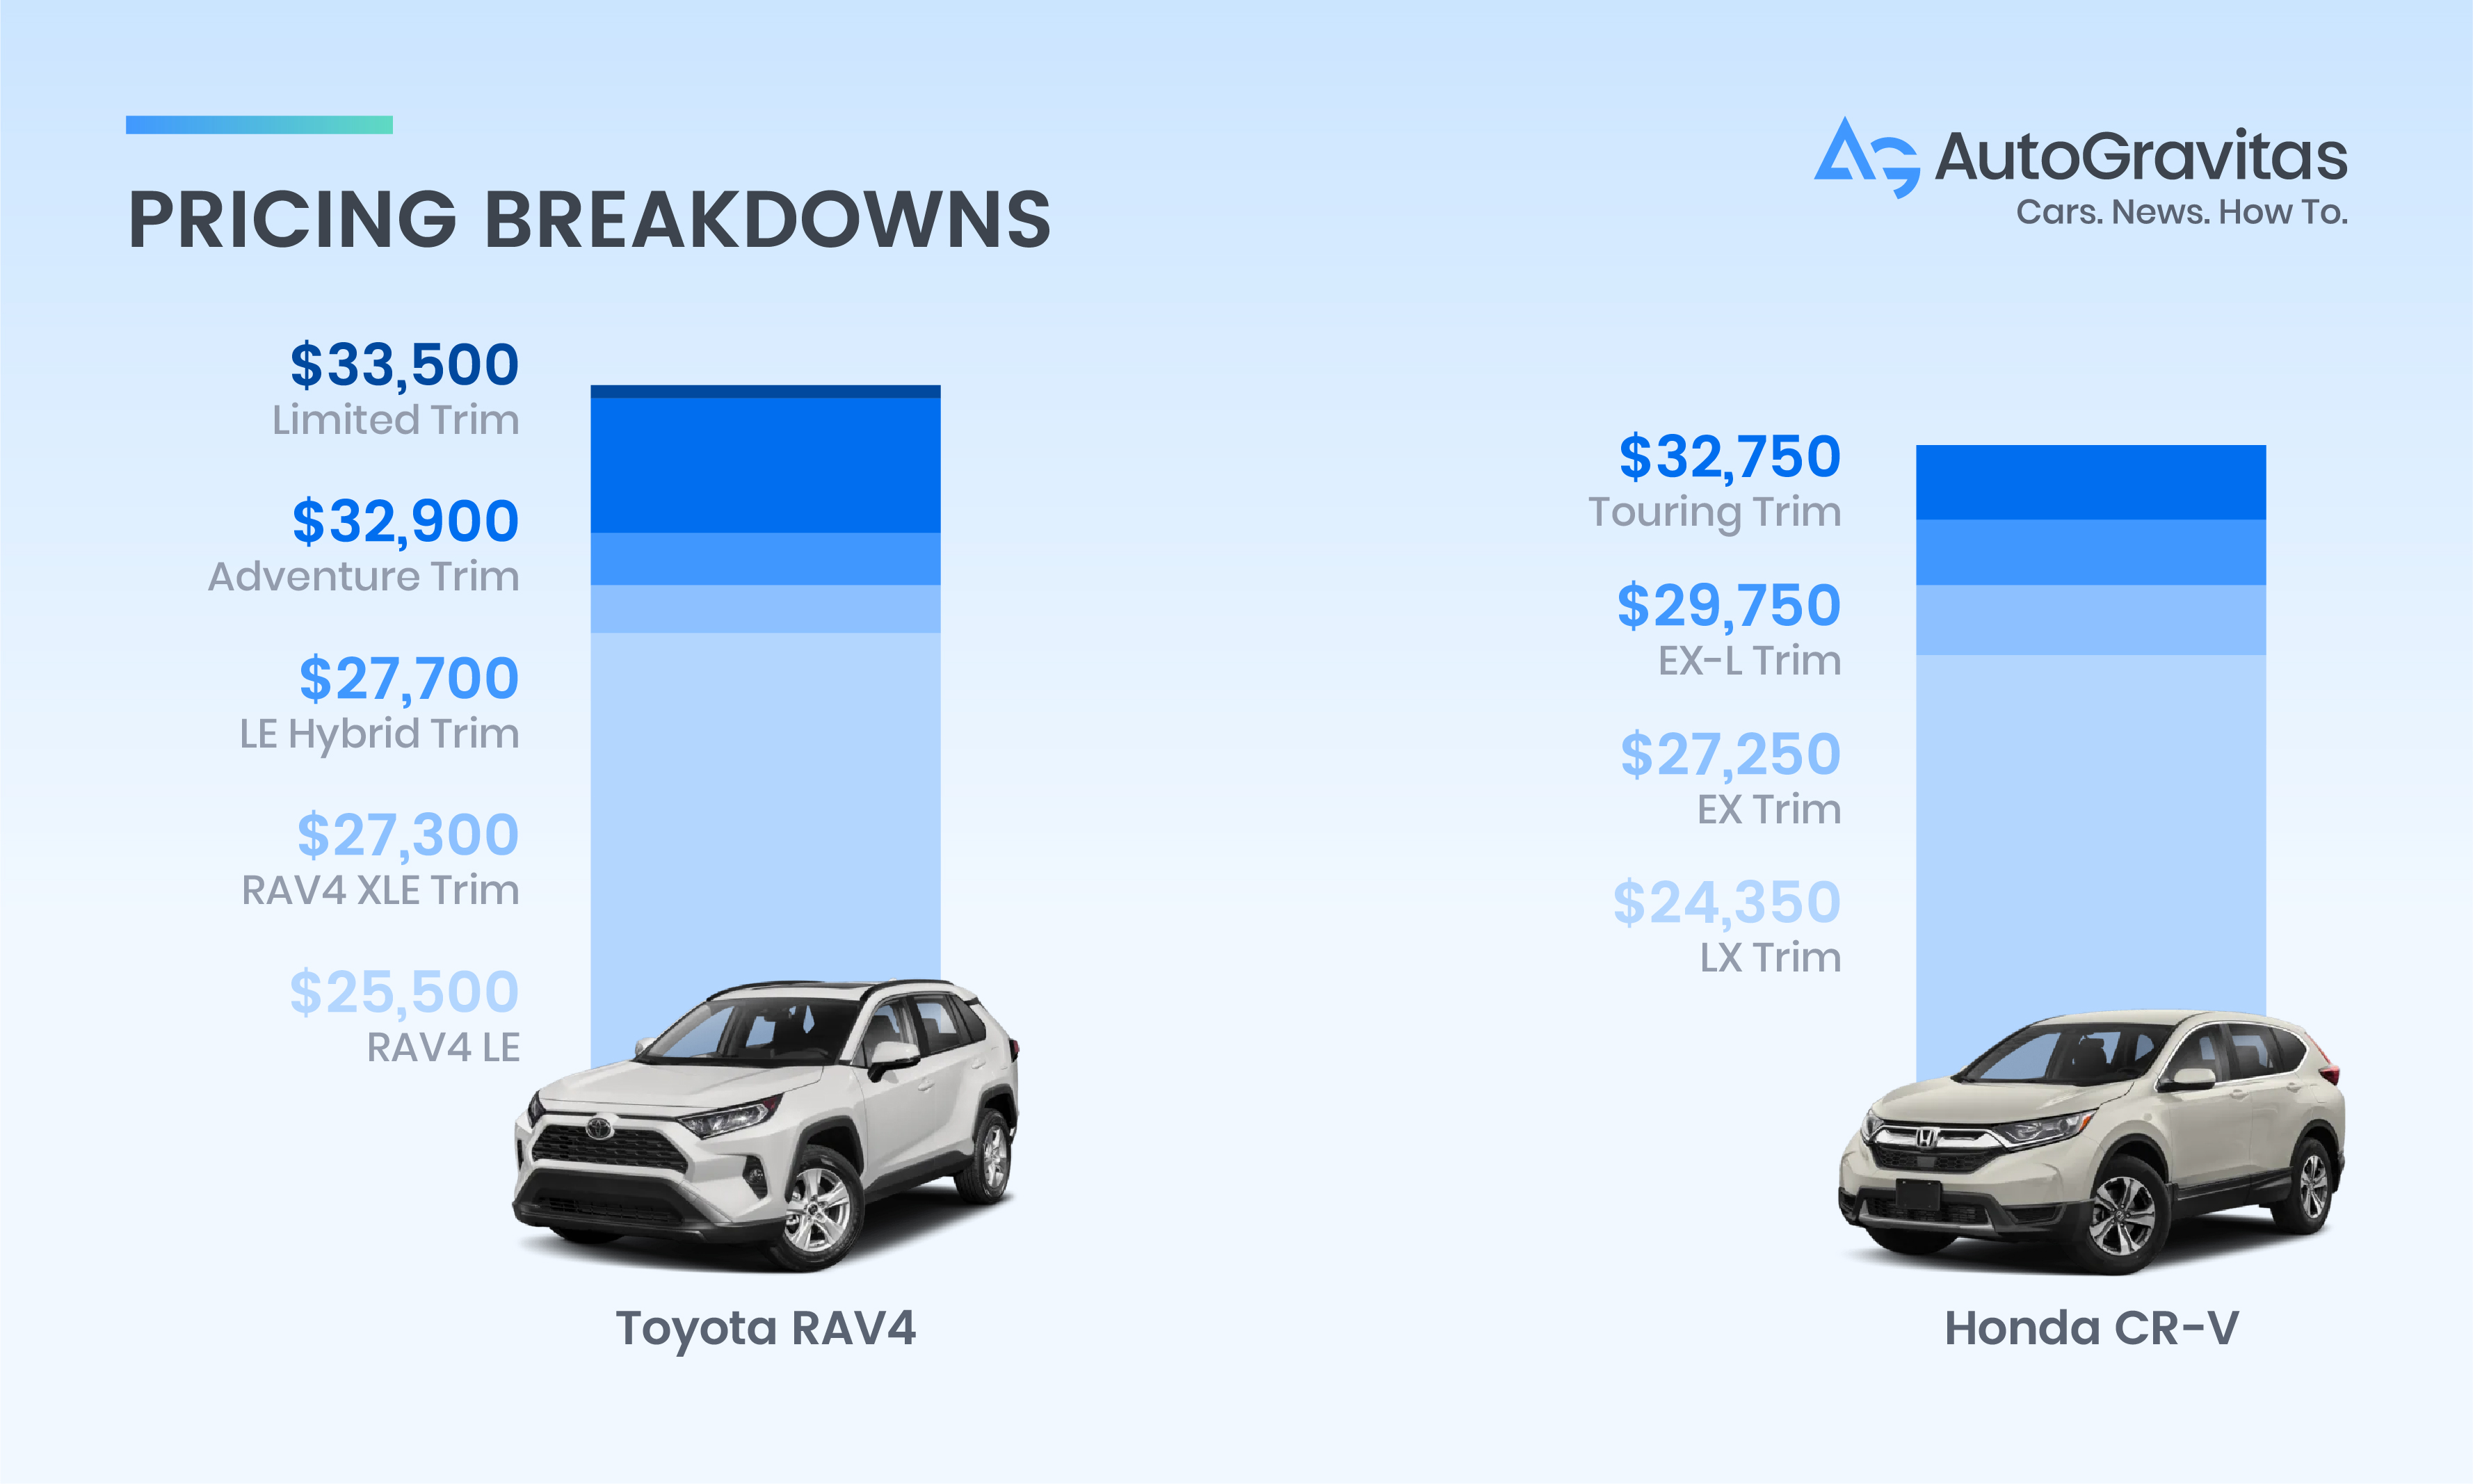 RAV4 vs CR-V price comparison graph